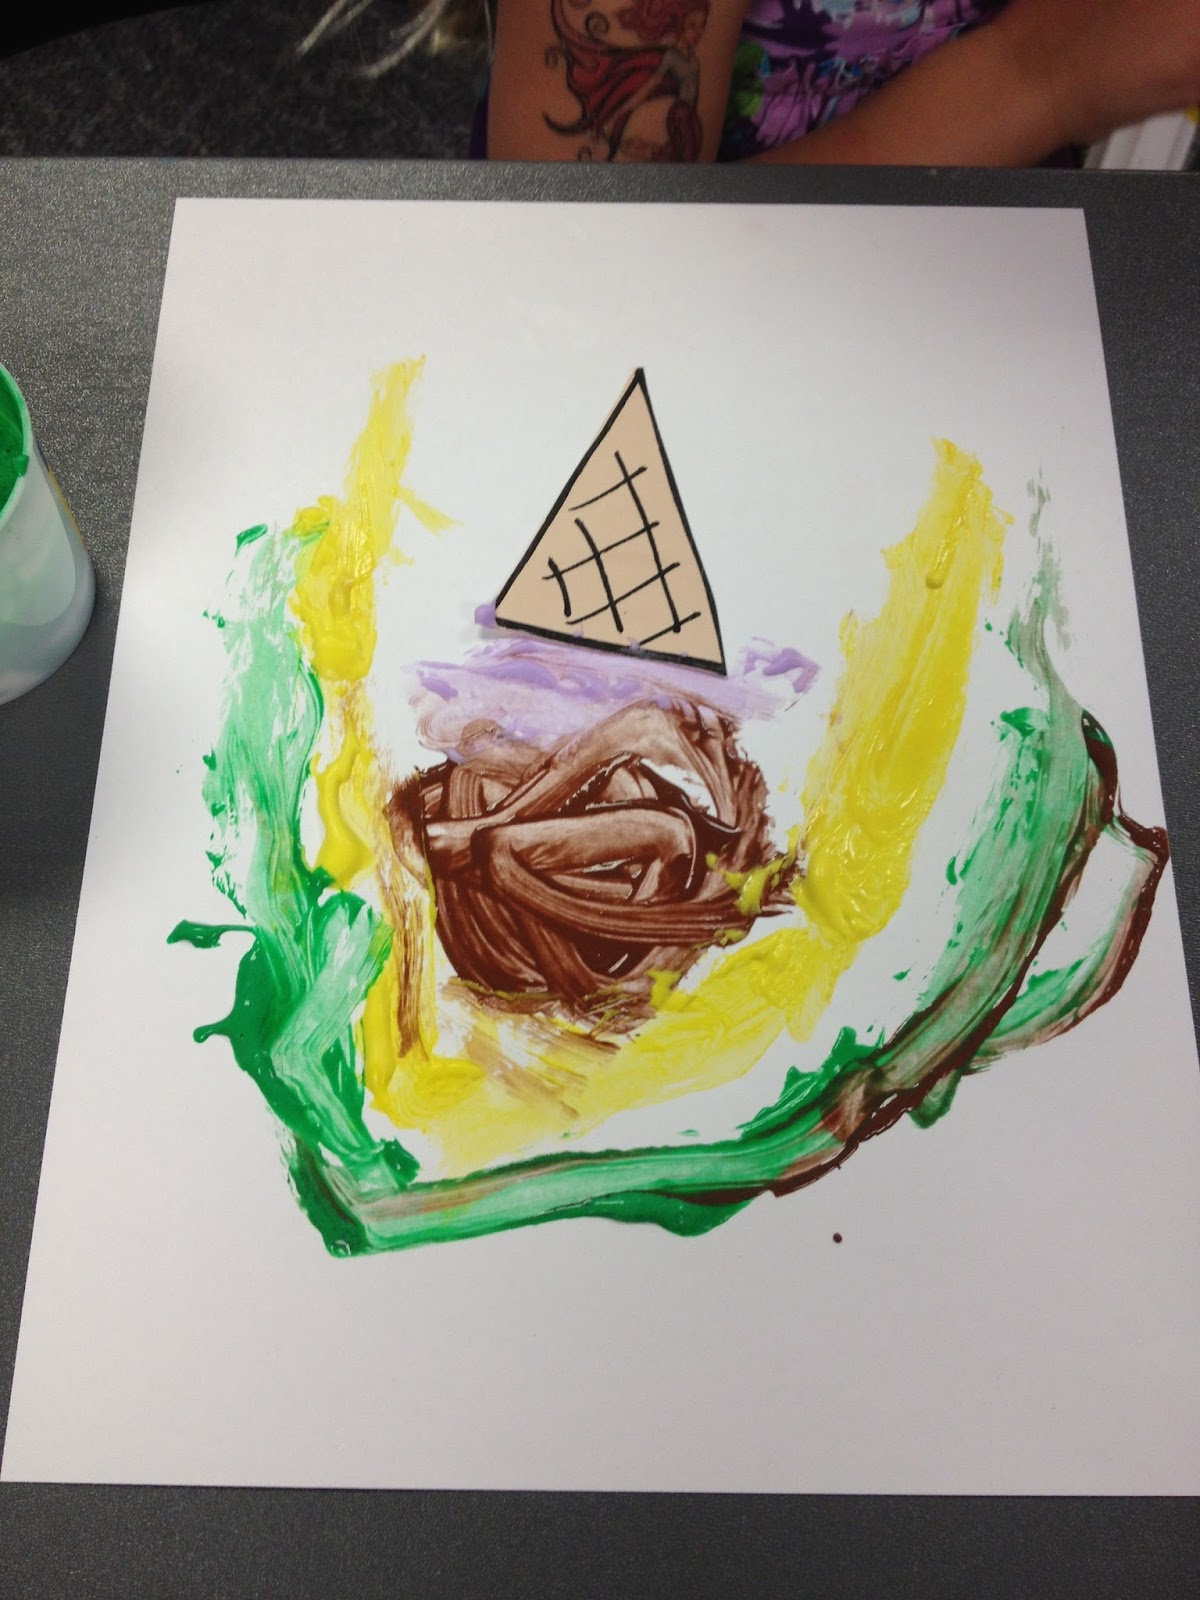 The show me librarian on process art for preschoolers for Library painting ideas